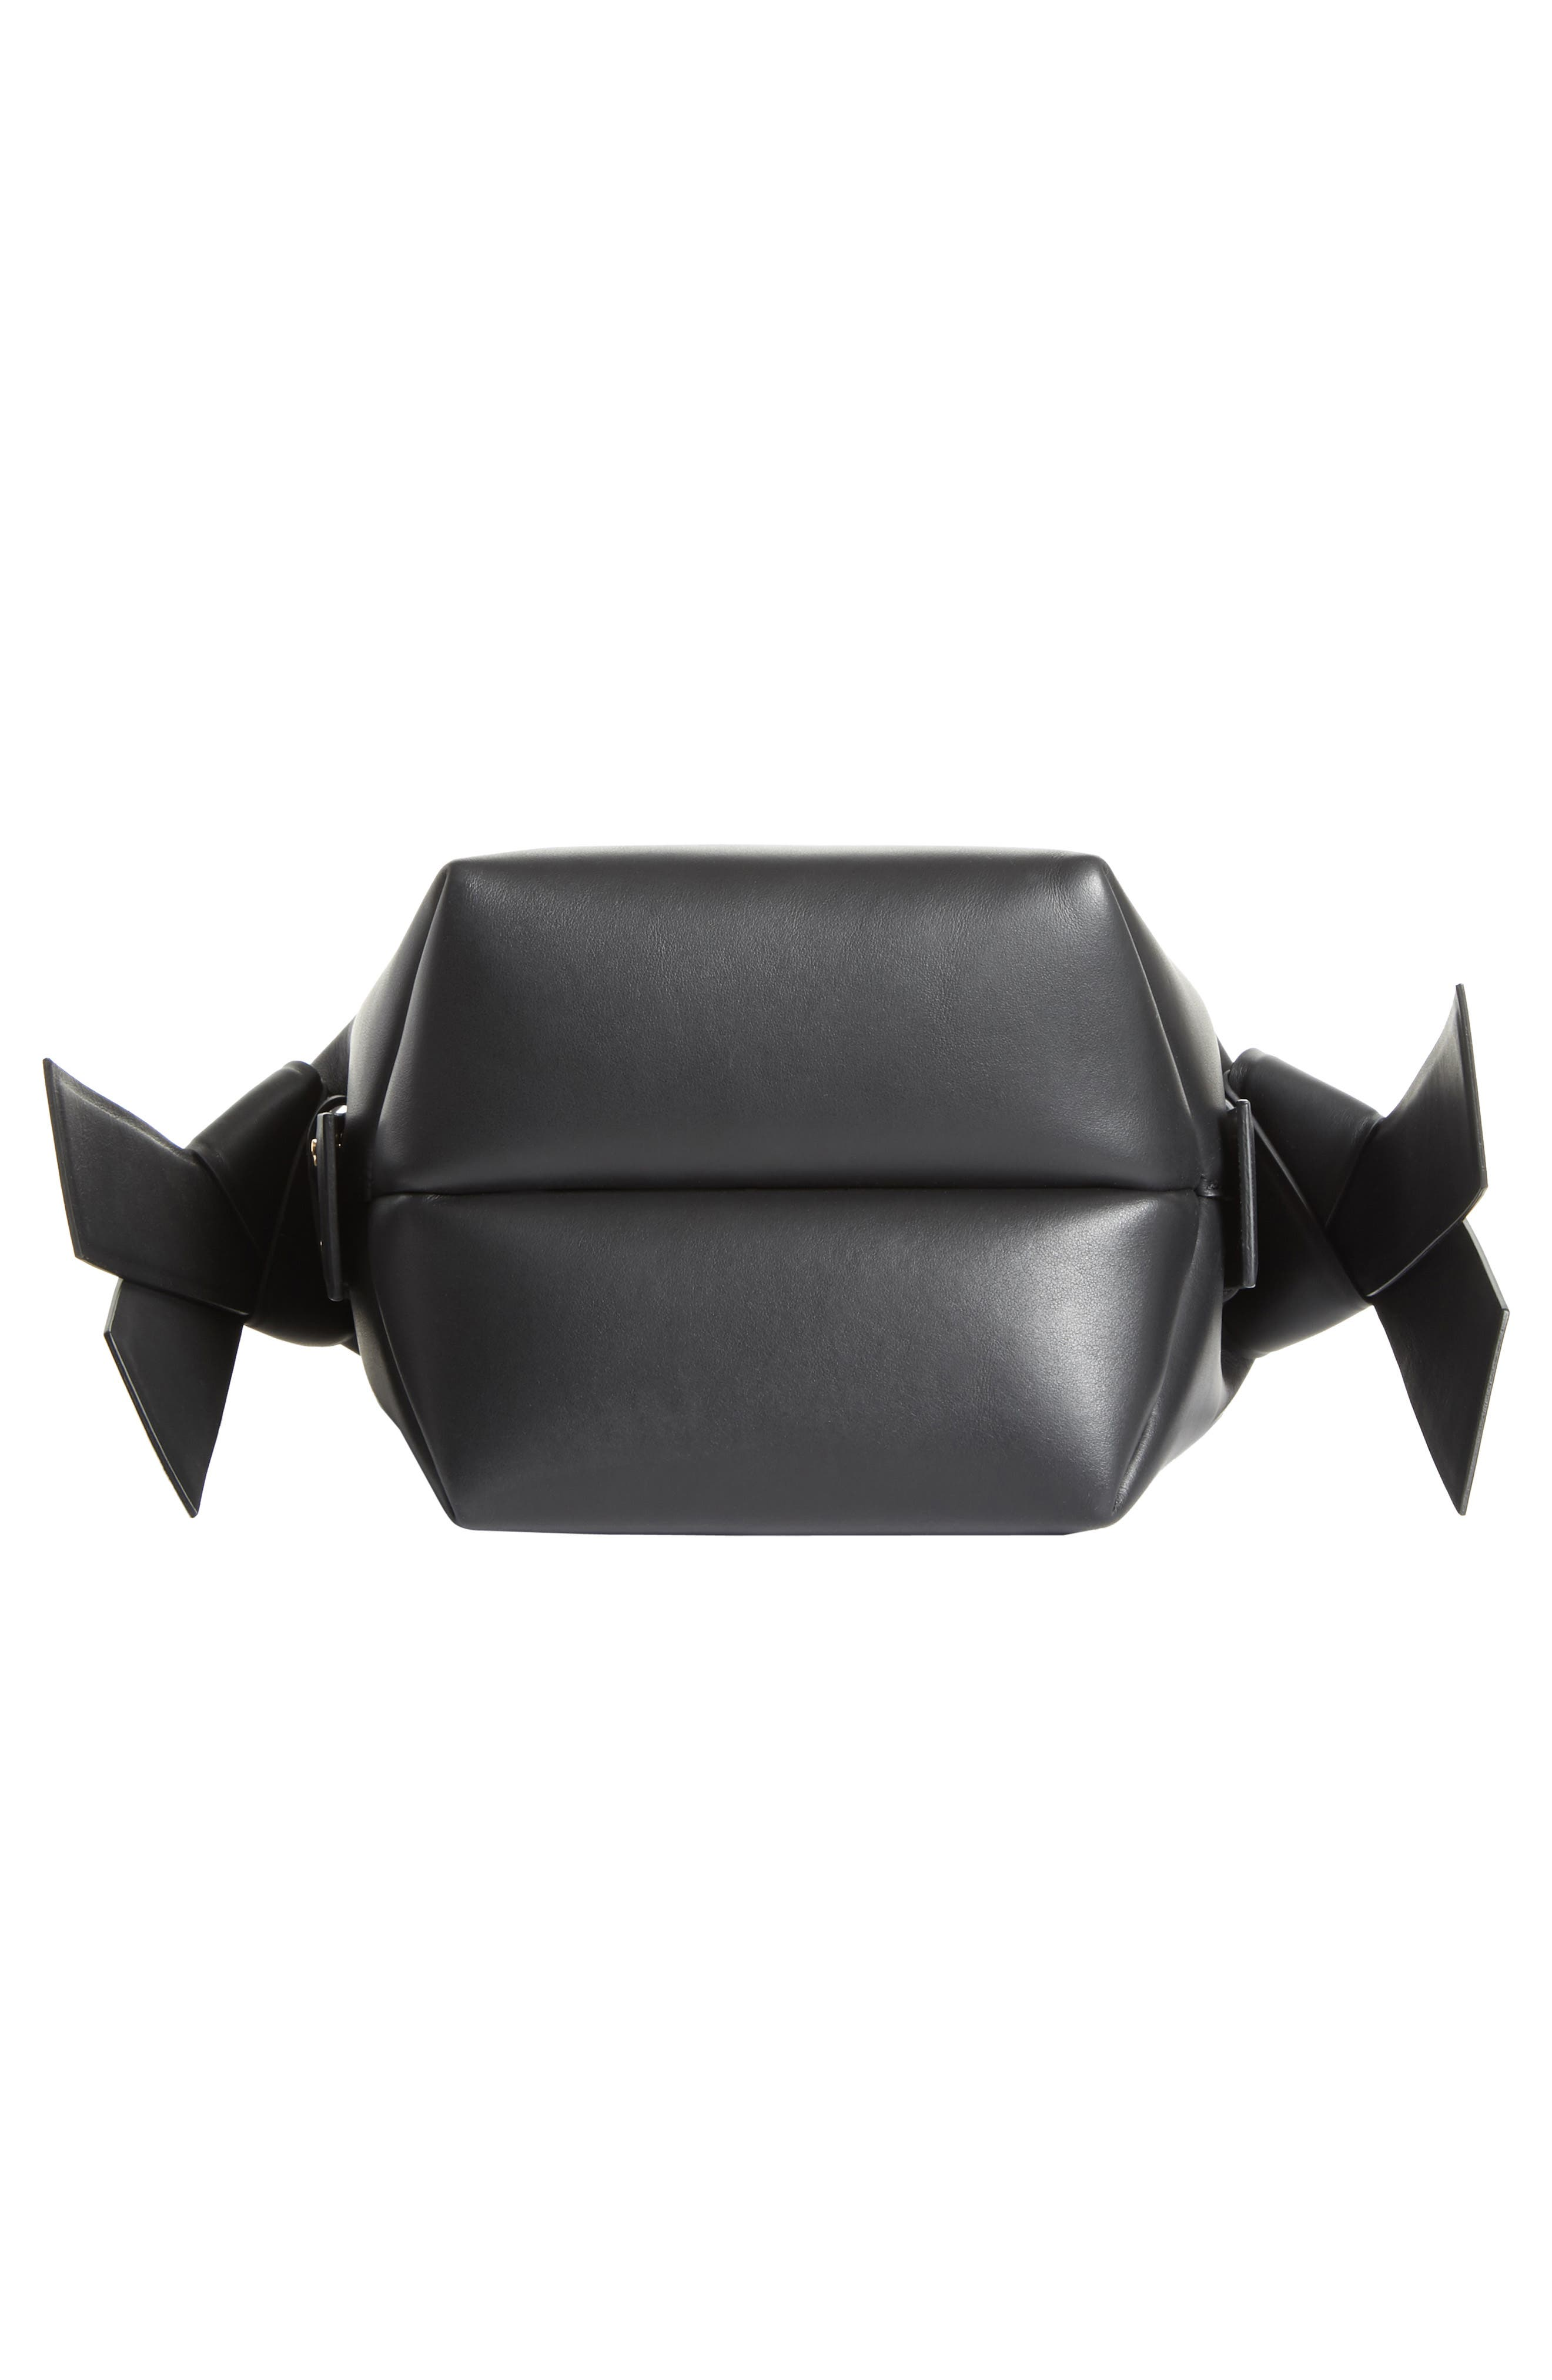 ACNE STUDIOS, Musubi Leather Mini Bag, Alternate thumbnail 6, color, BLACK